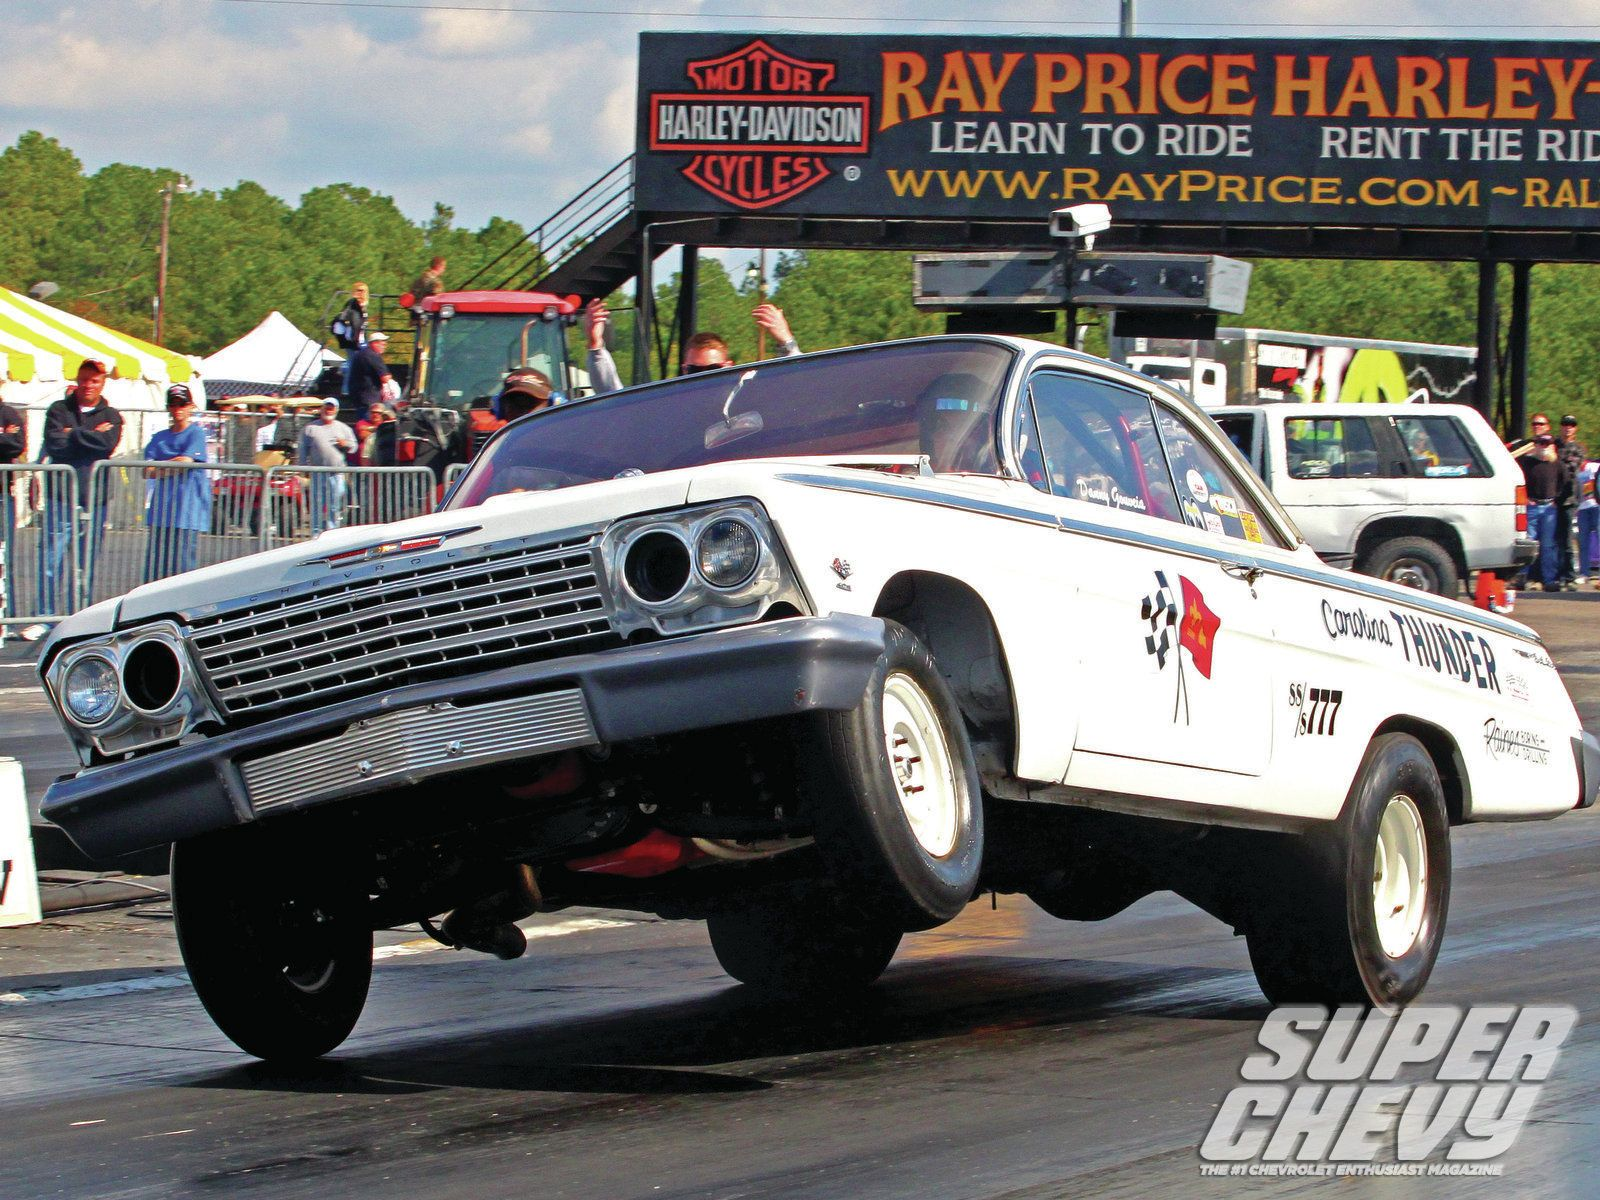 63 chevy at the drags http://image.superchevy.com/f/40161840/sucp ...